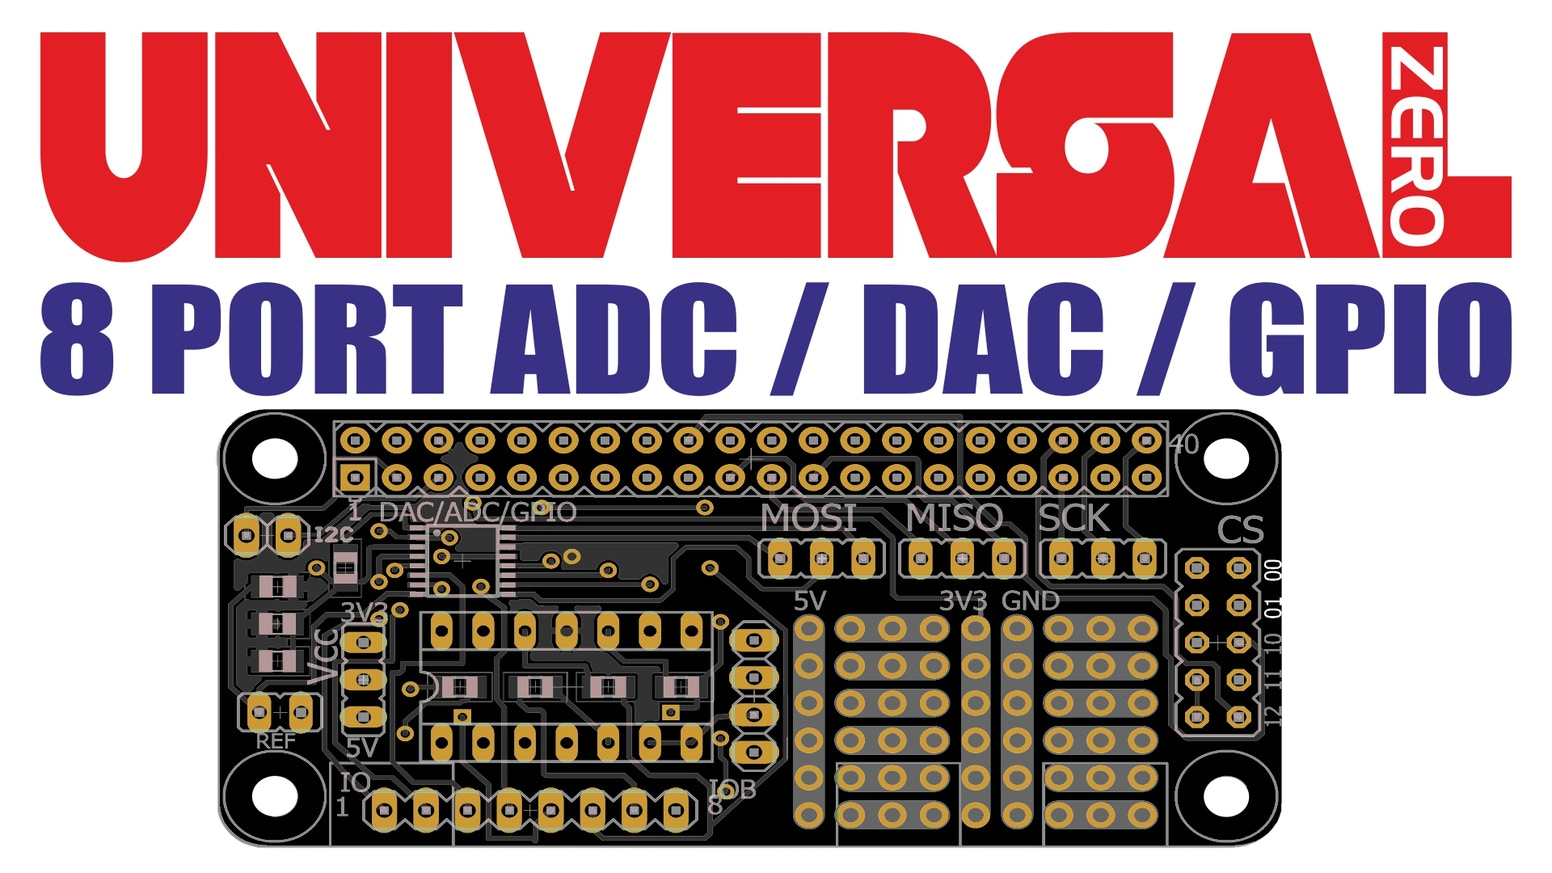 Universal Adc Dac Gpio For Raspberry Pi Phat 8 Ports By Piotr Shield Dummies Experimental Board Analog Digital Zero Pin Or Software Configurable All